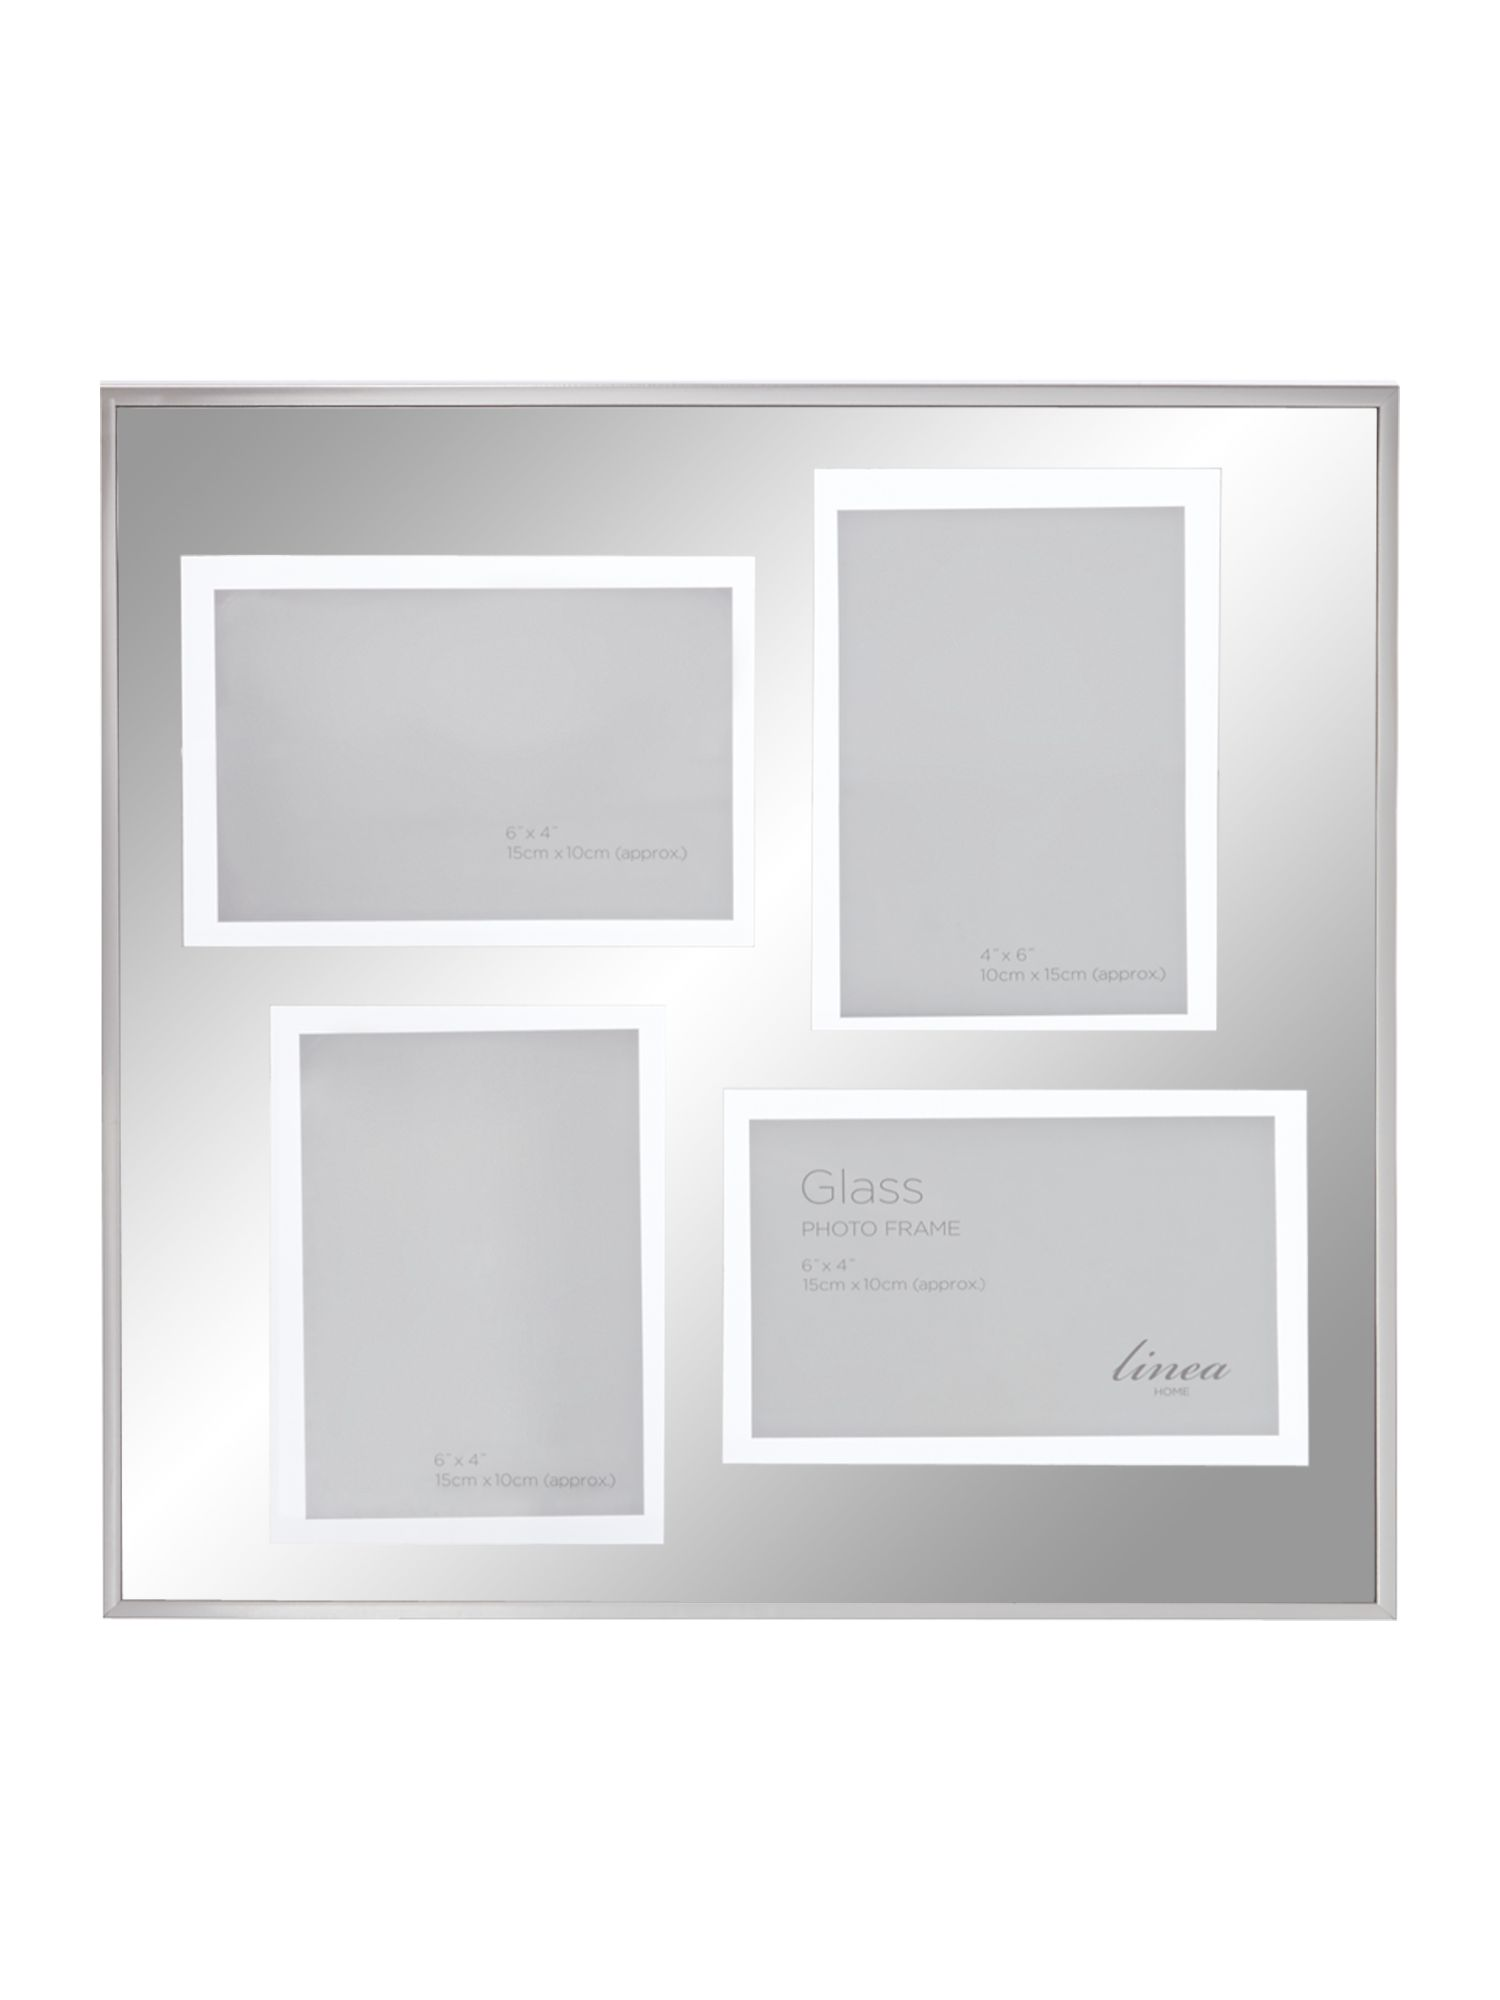 Chrome Marco multi aperture photo frame